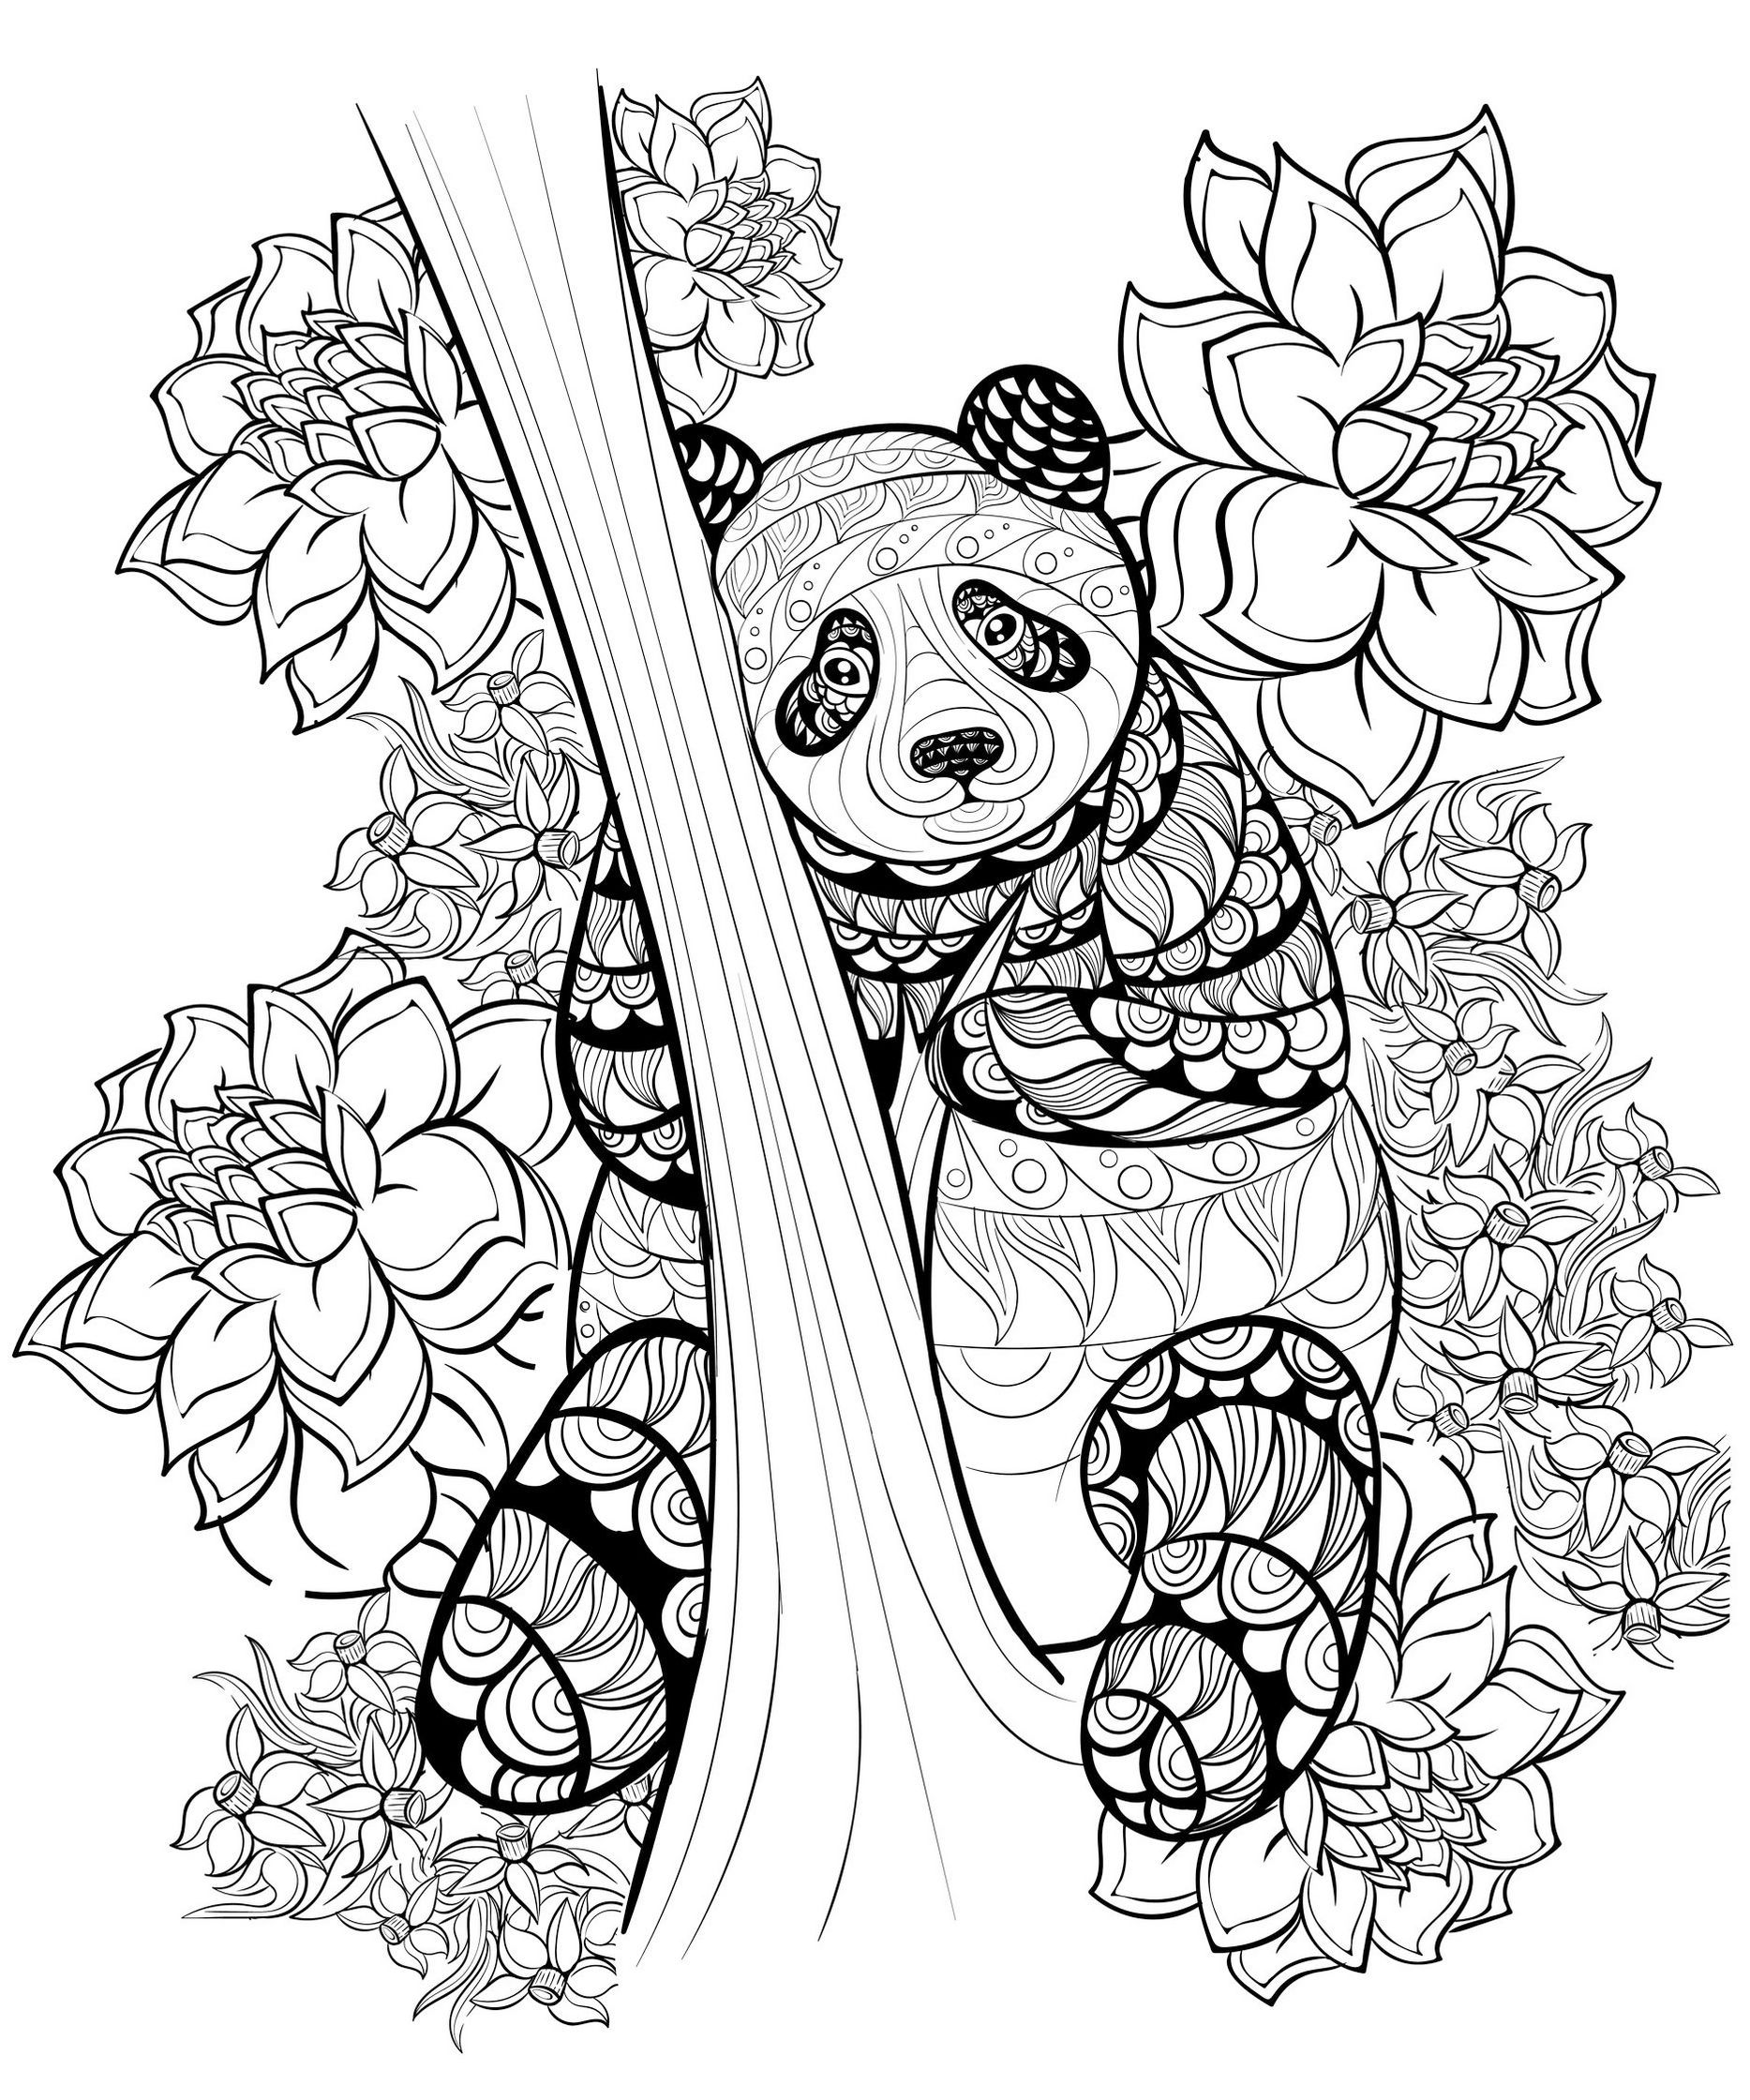 Zentangle panda coloring sheet